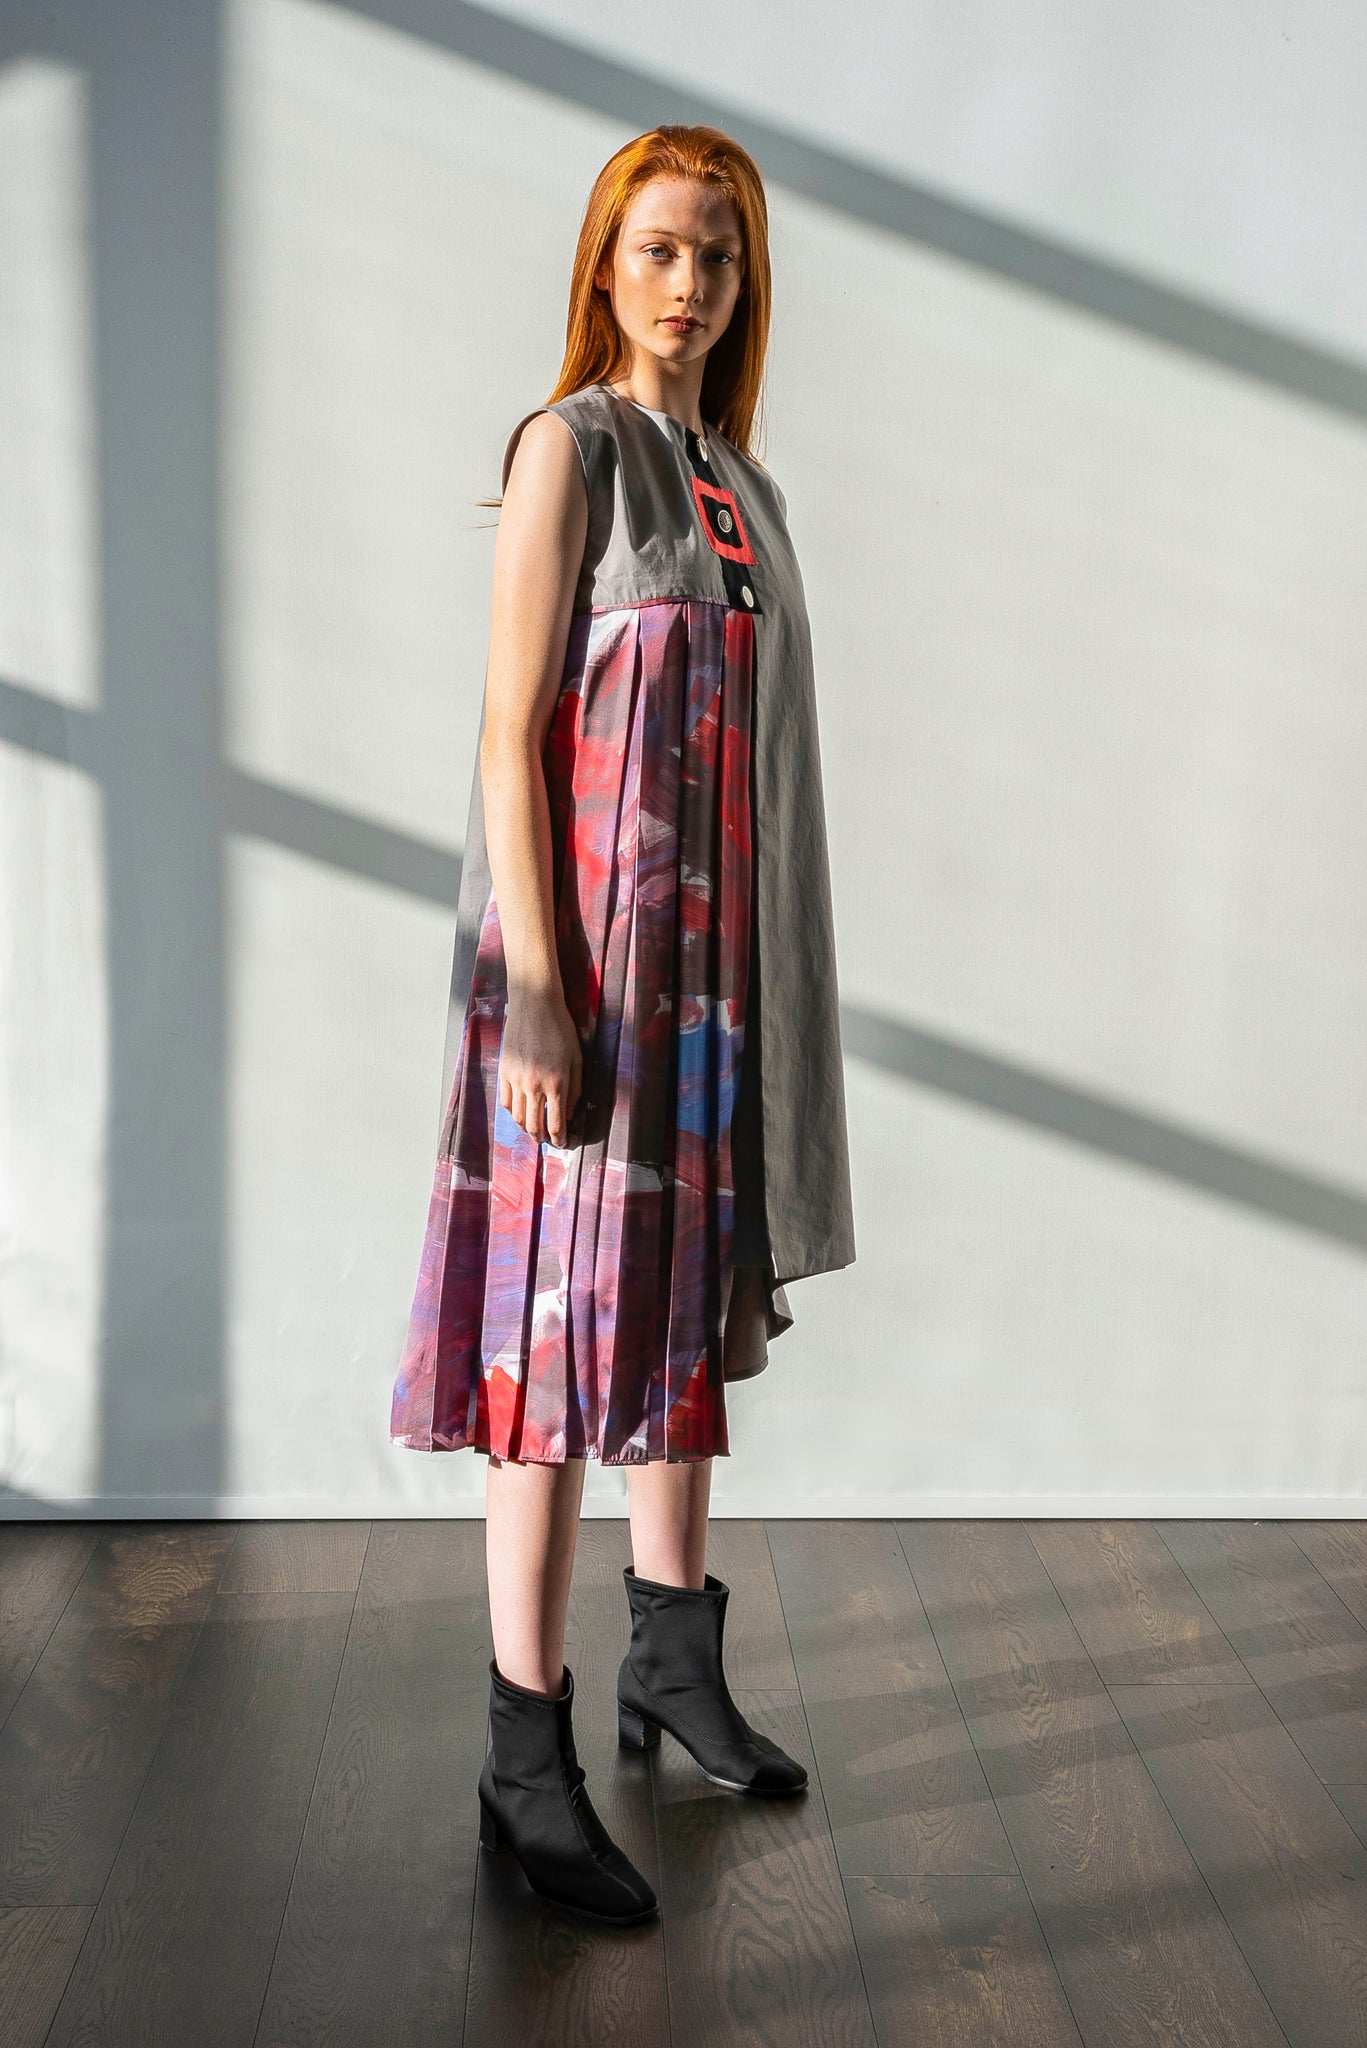 Arshys-Gustav pleated dress